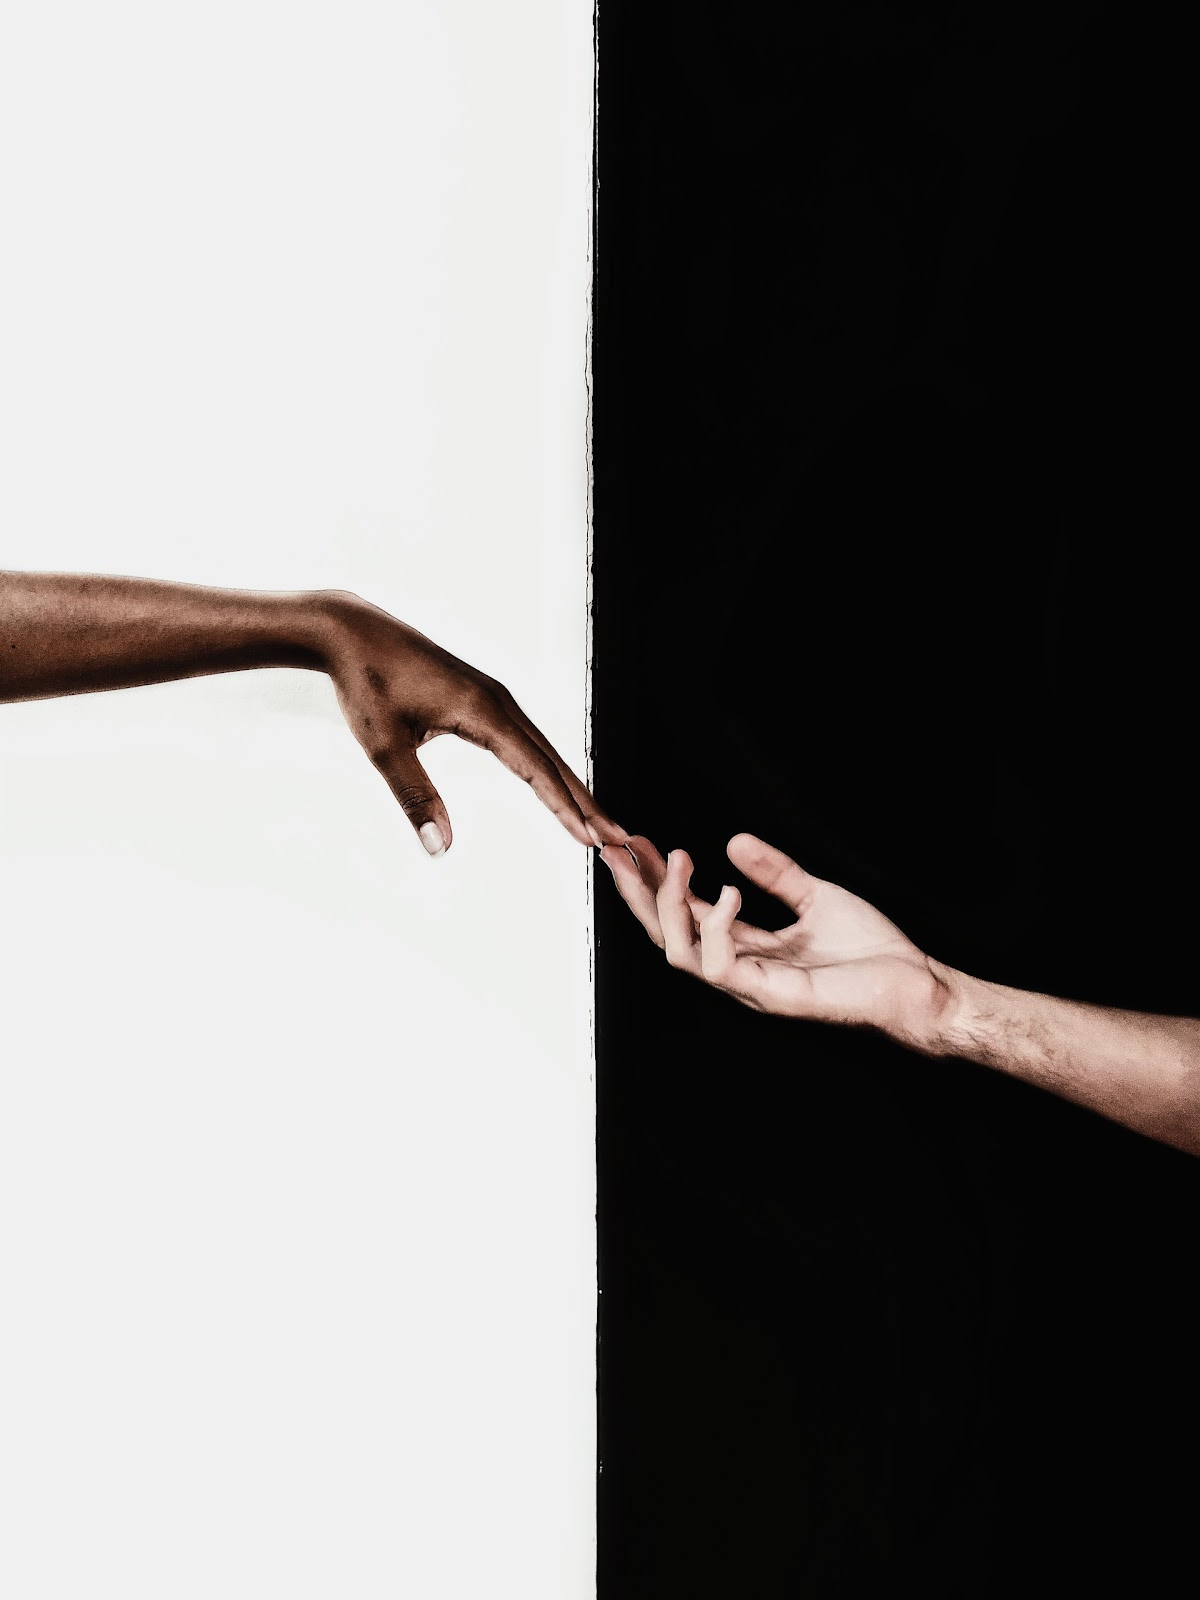 two hands trying to reach out to each other